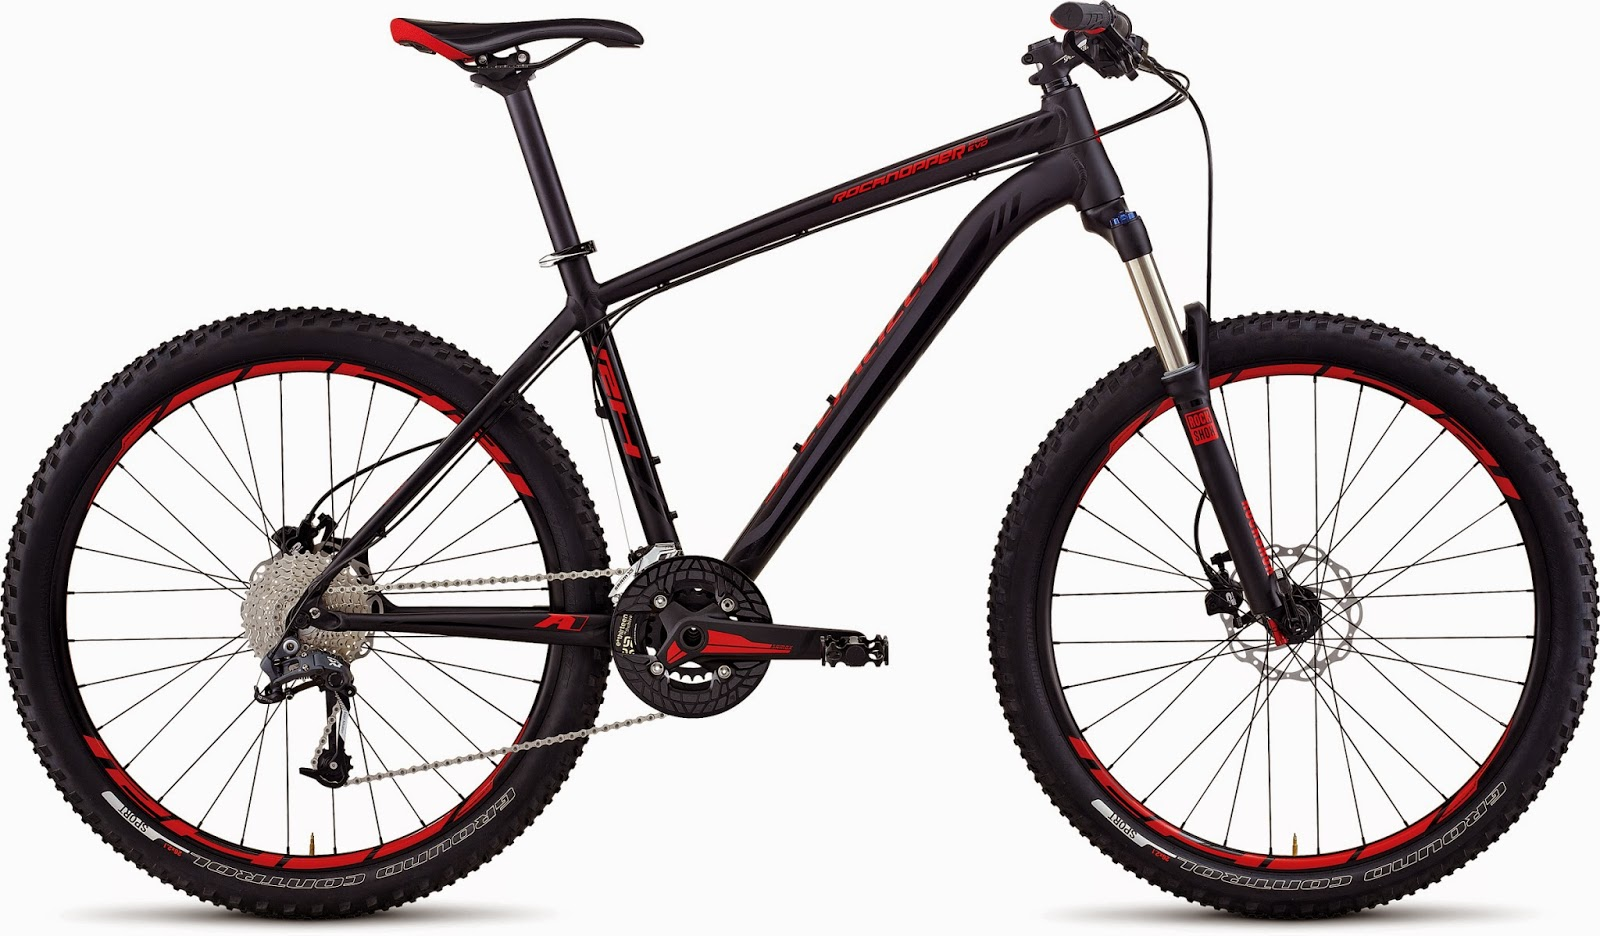 Specialized Rockhopper Pro Evo 29er 2014 Mountain Bike